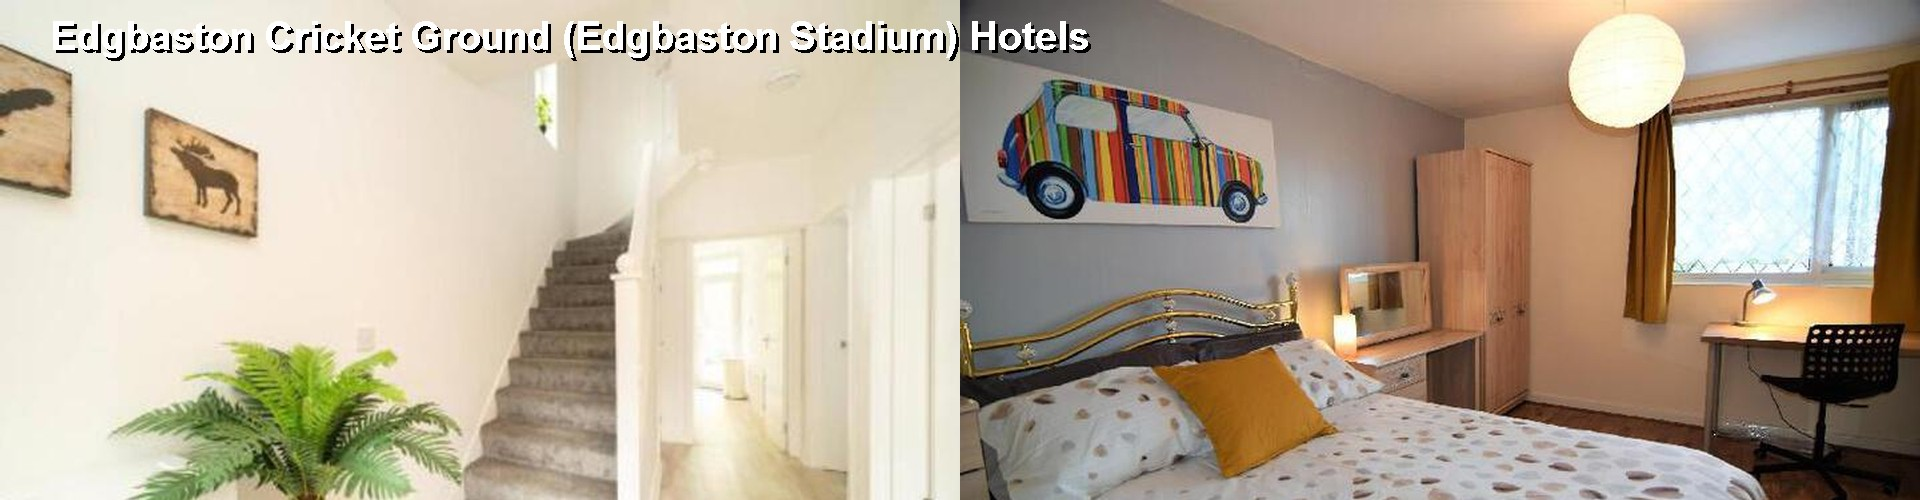 Hotels Near Edgbaston Cricket Ground Birmingham